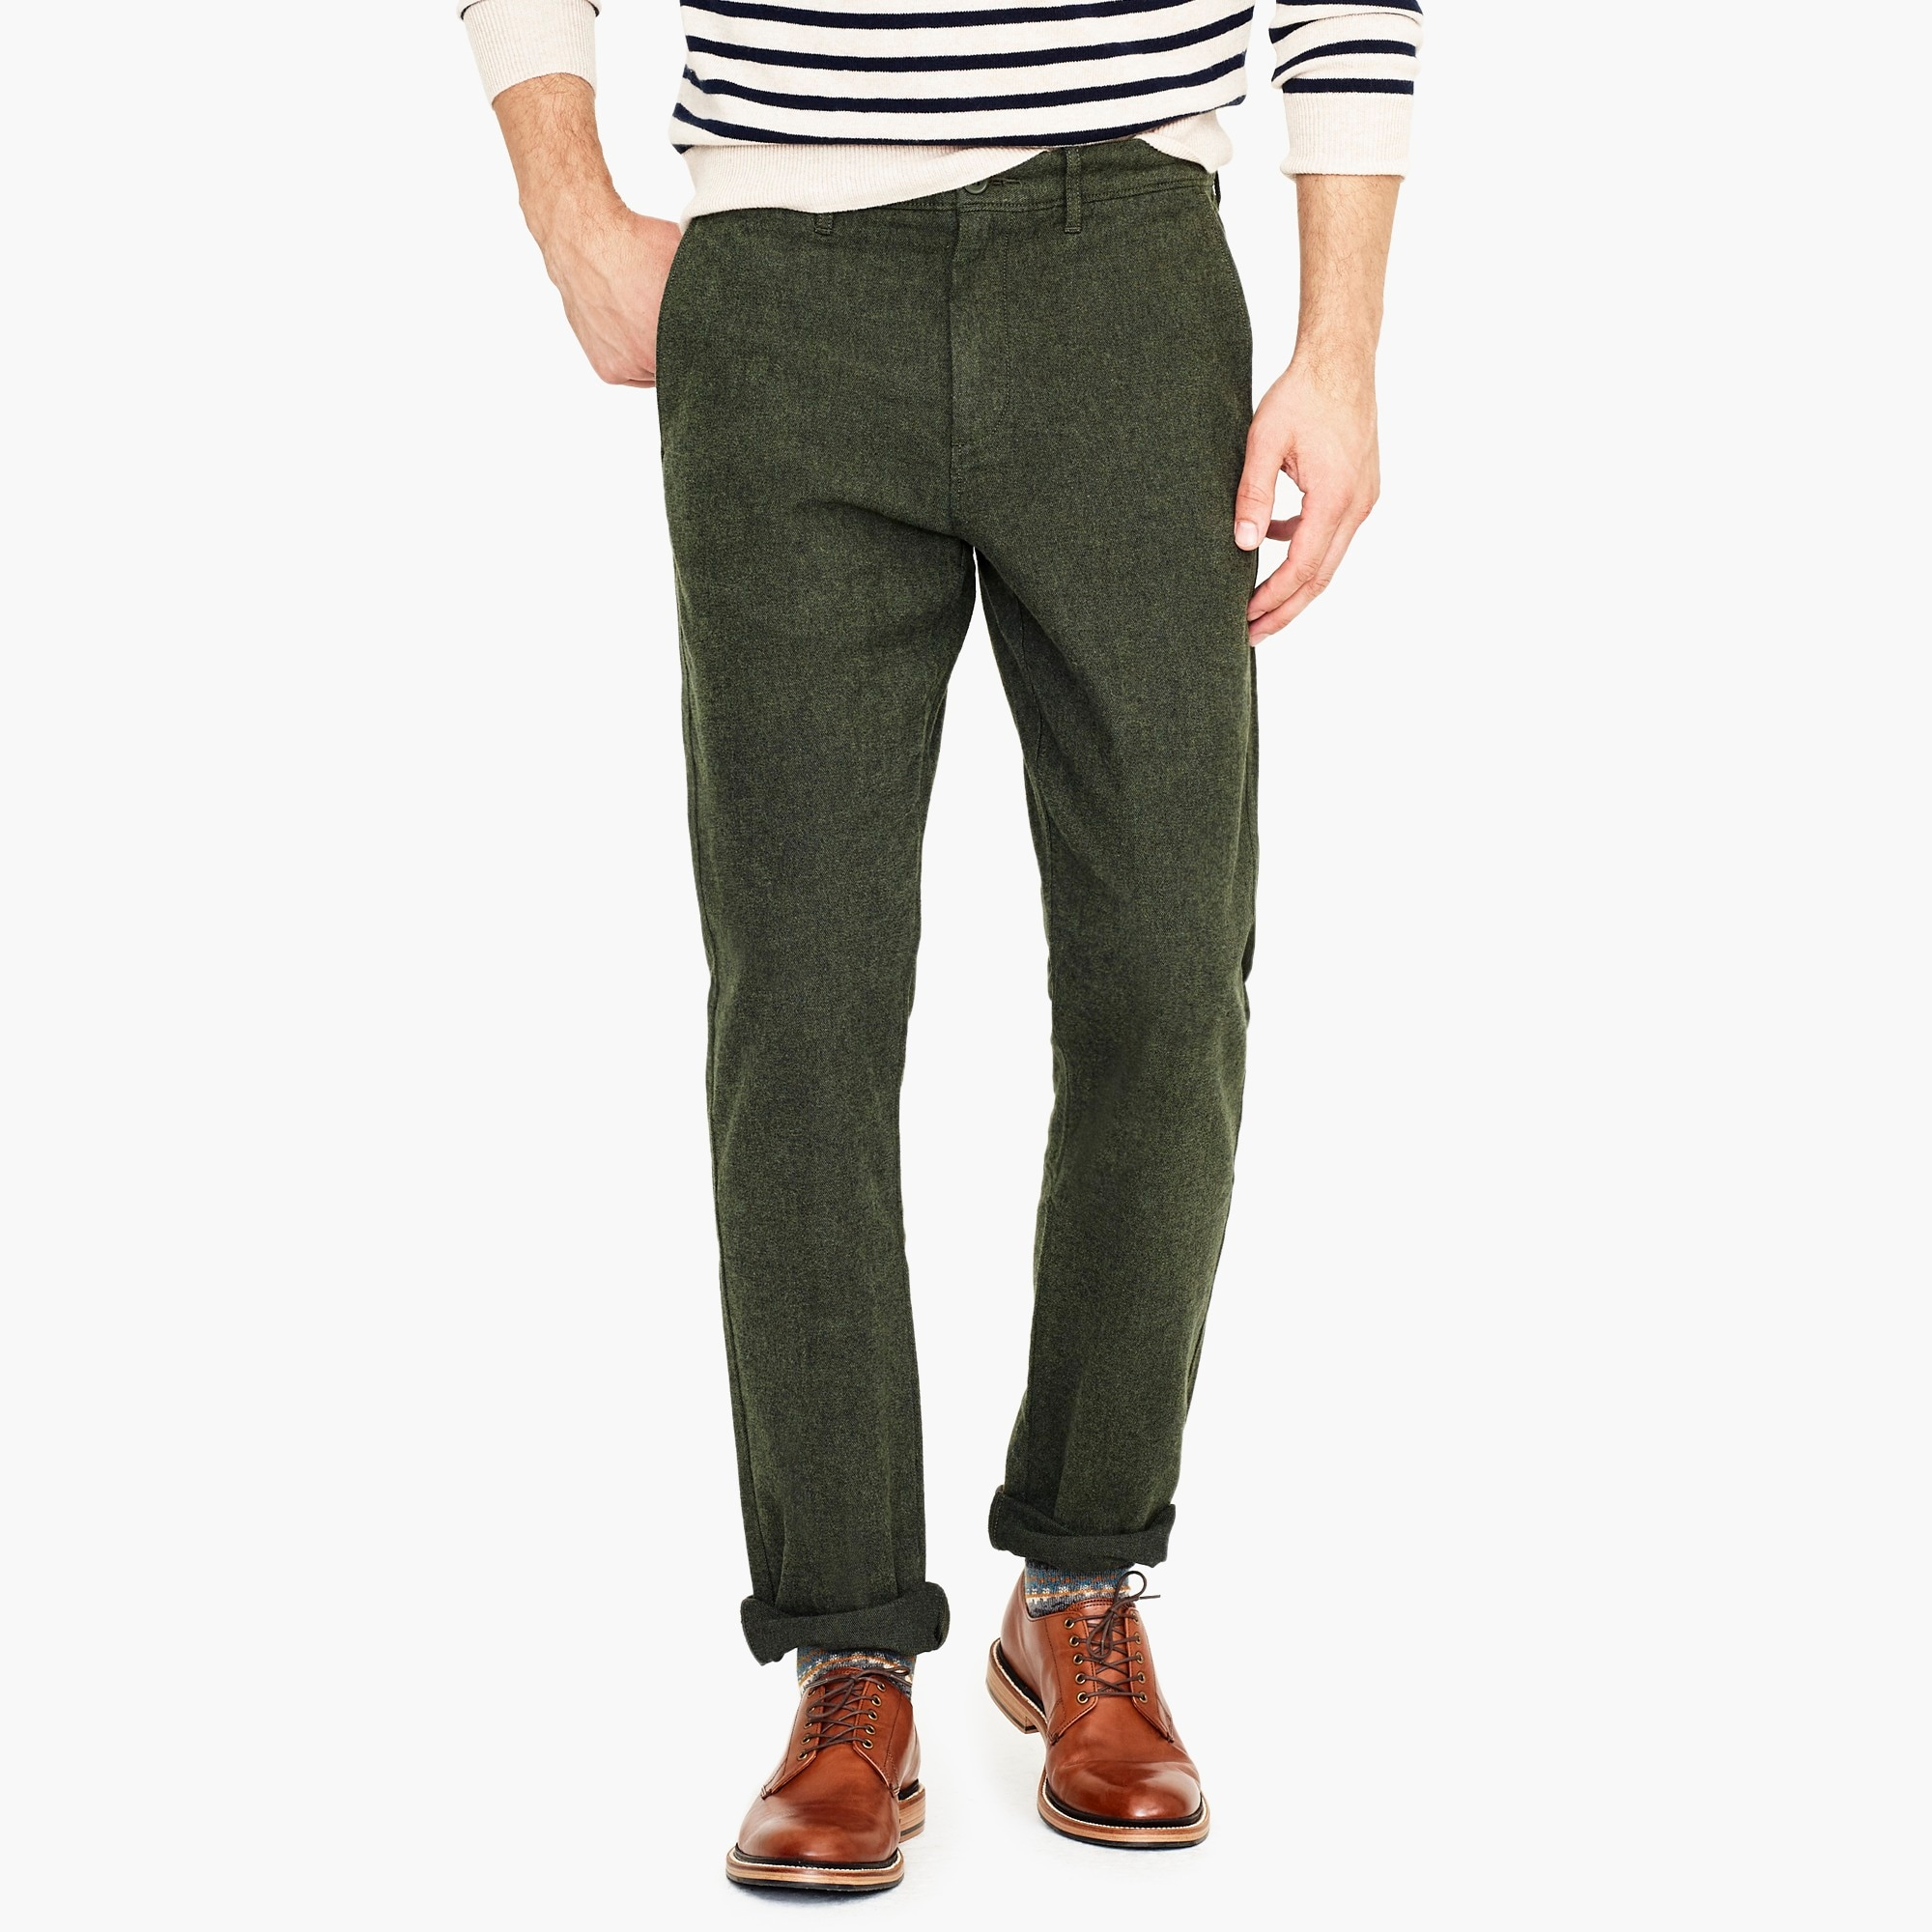 mens 770 Straight-fit pant in stretch brushed twill